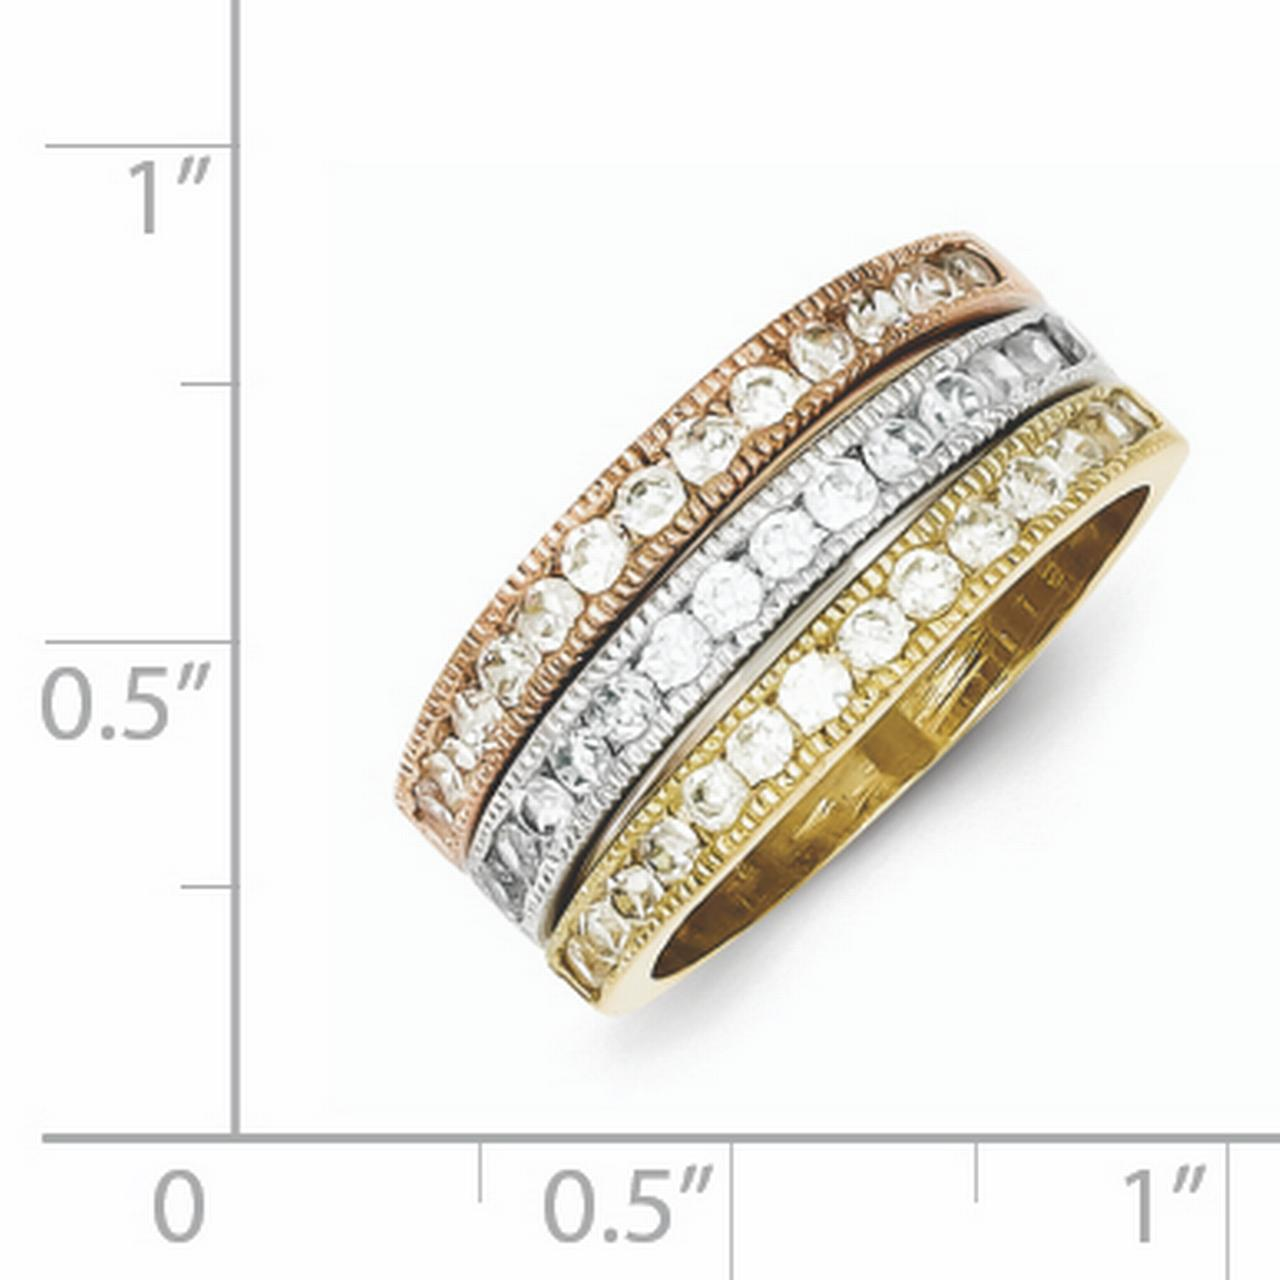 925 Sterling Silver Vermeil Trio Cubic Zirconia Cz Band Rings Size 8.00 Ring Engagement Stackable Fancy/ Fine Jewelry Gifts For Women For Her - image 1 de 2